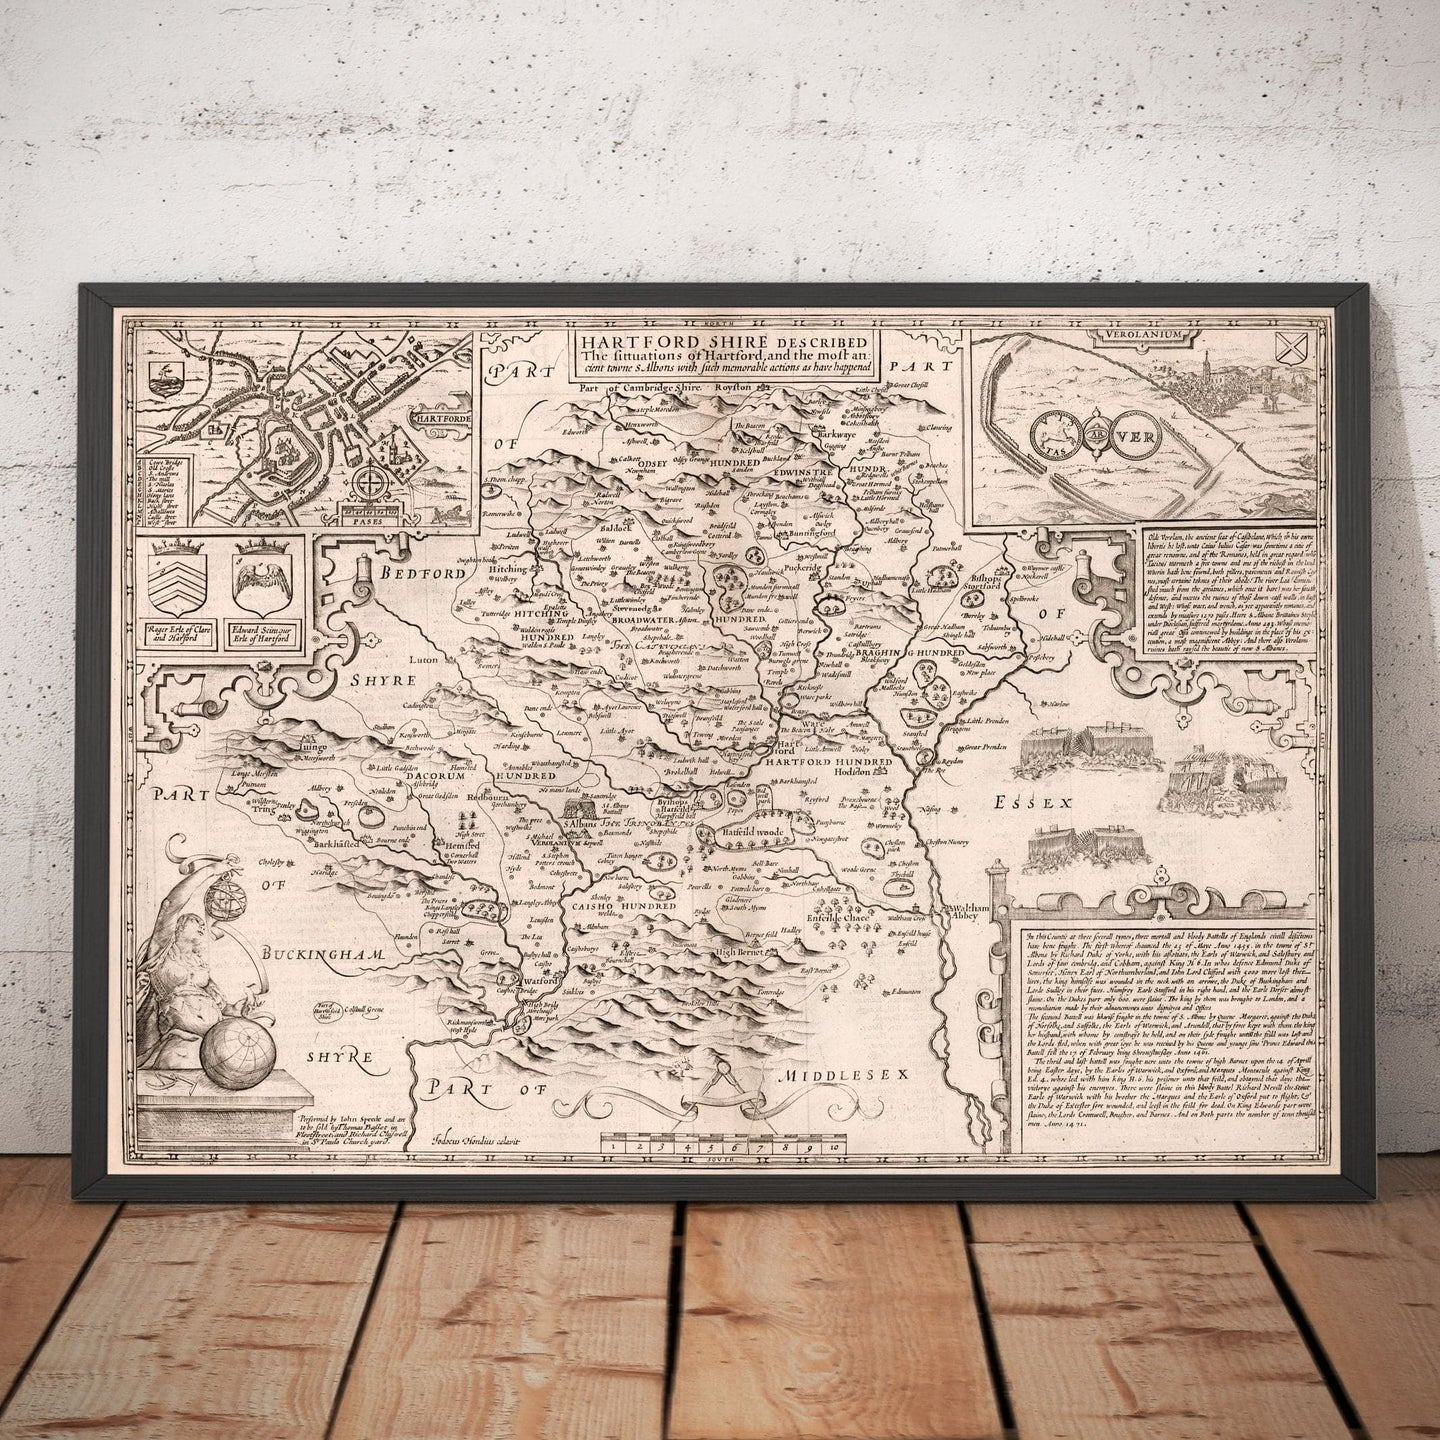 Old Map of Hertfordshire, 1611, John Speed - Stevenage, St Albans, Watford, Hemel Hempstead - Monochrome Vintage, Antique Wall Art - Framed or Unframed